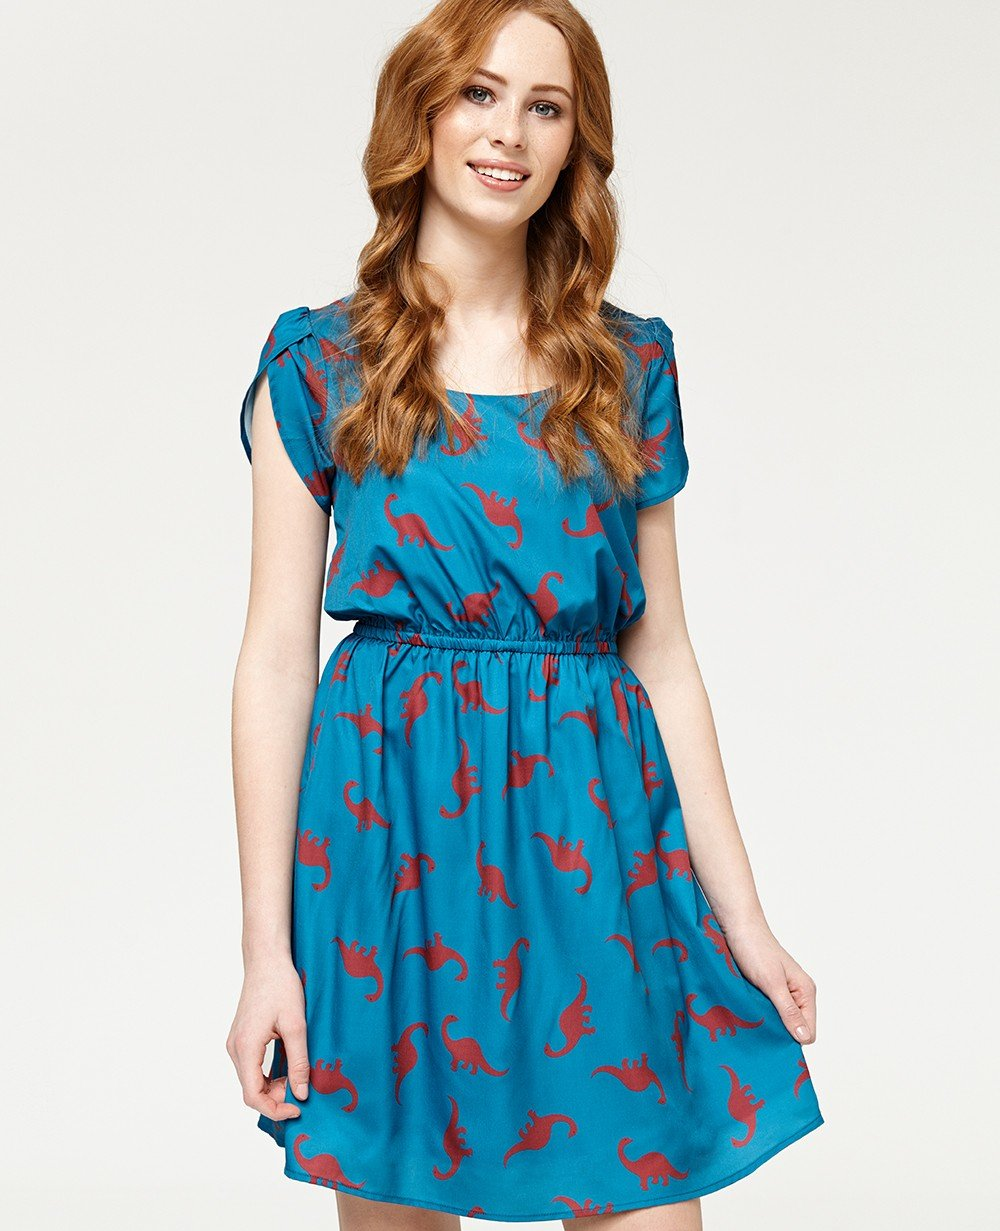 Misfit London Frances Teal Dinosaur Print Flared A Line Dress